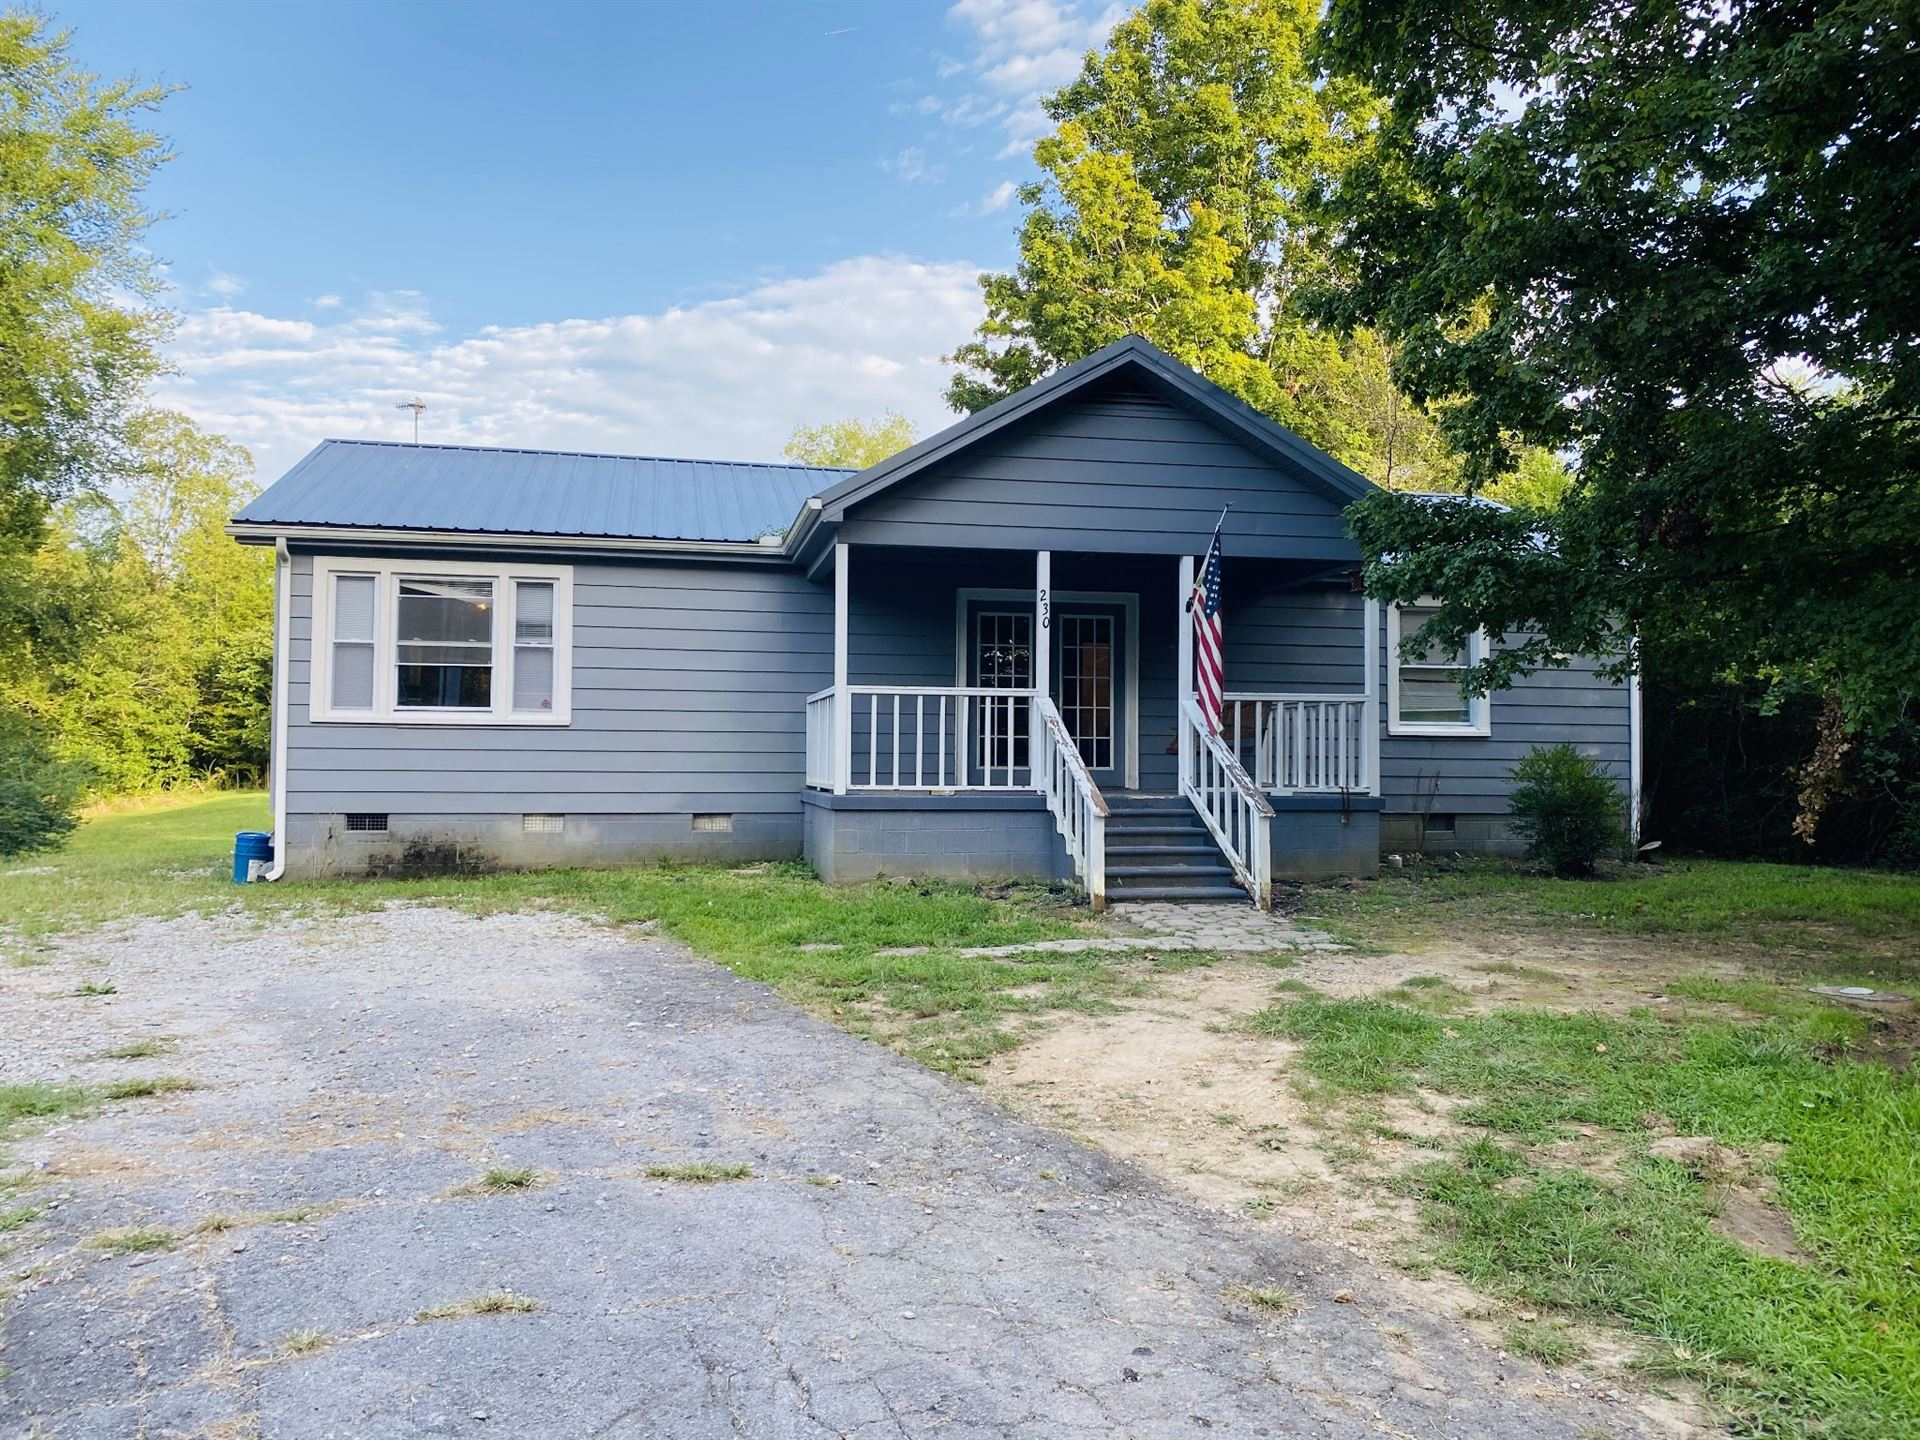 230 W End Dr, Waverly, TN 37185 - MLS#: 2183682